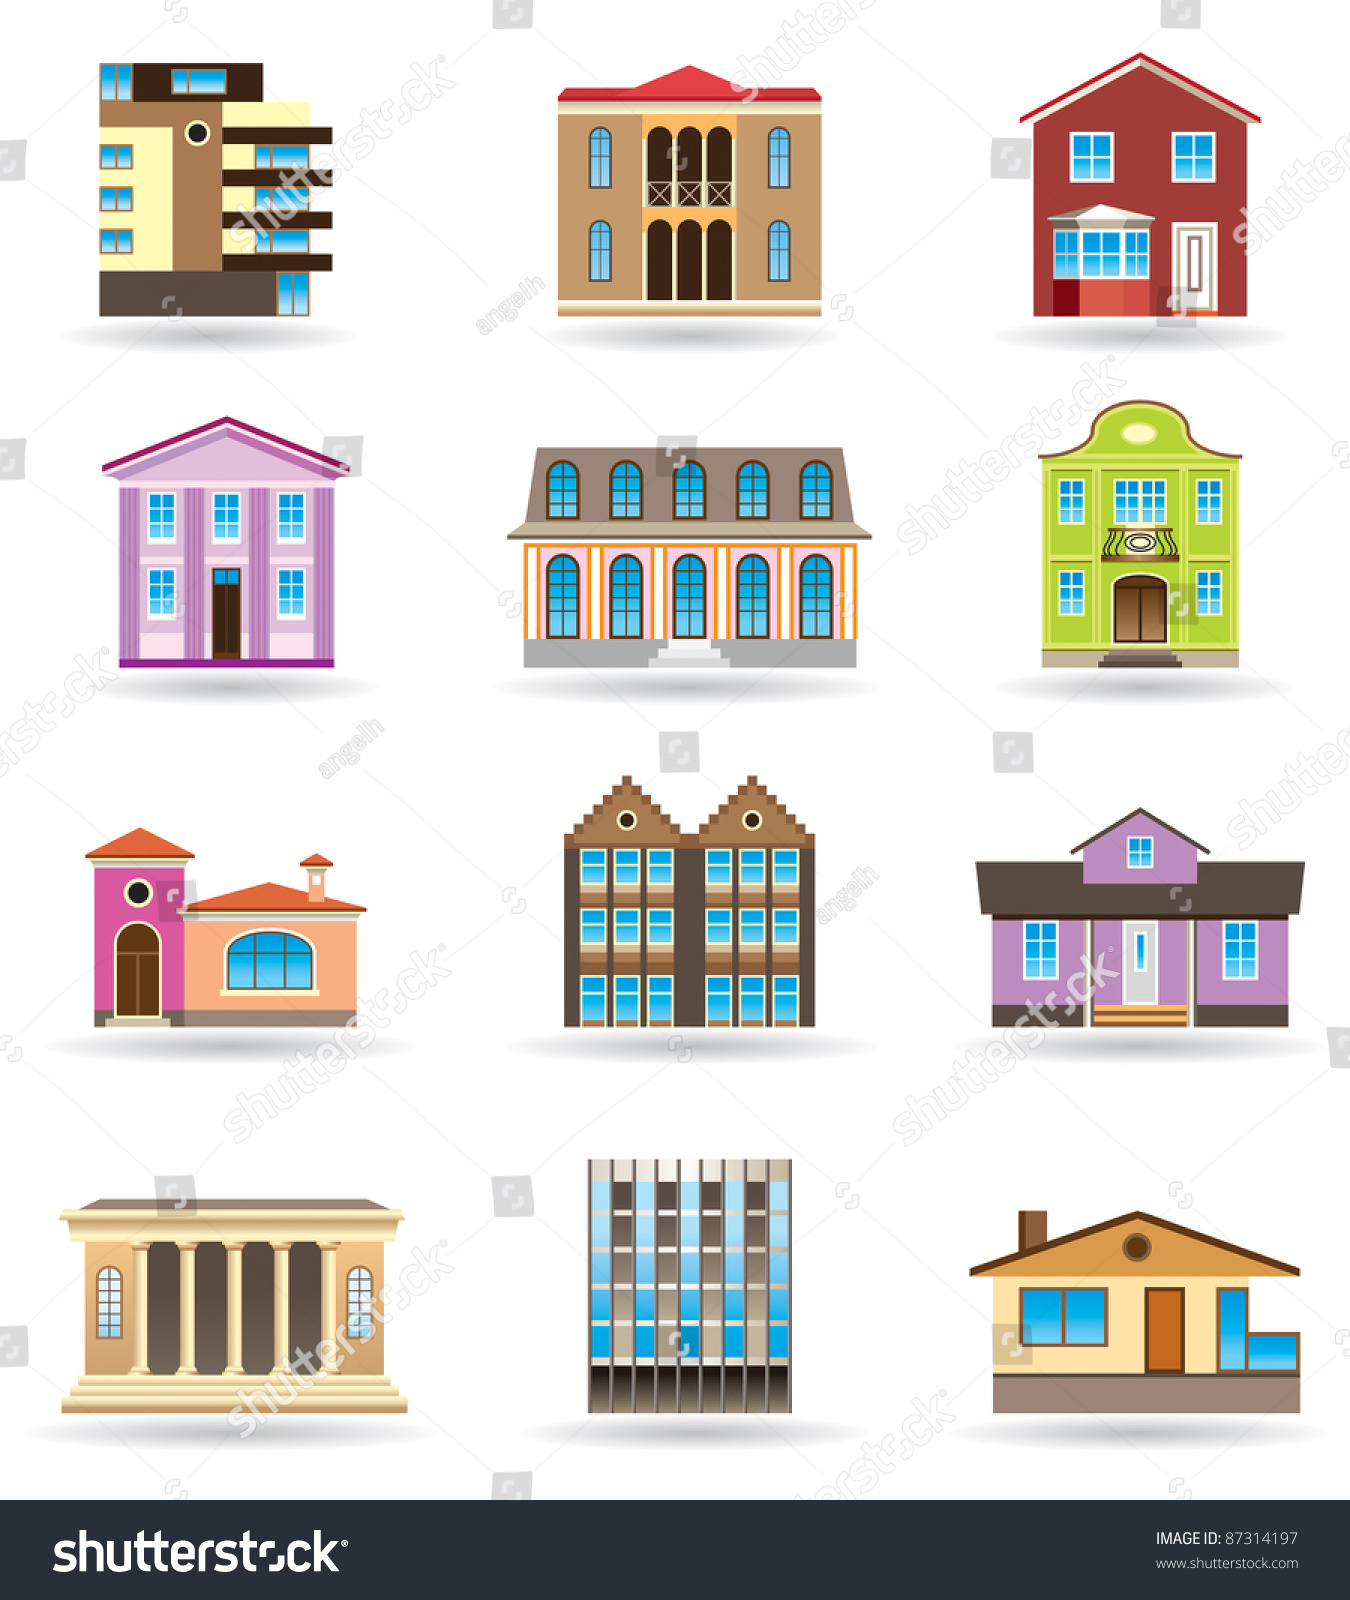 What Are The Different Styles Of Homes House Architecture Styles